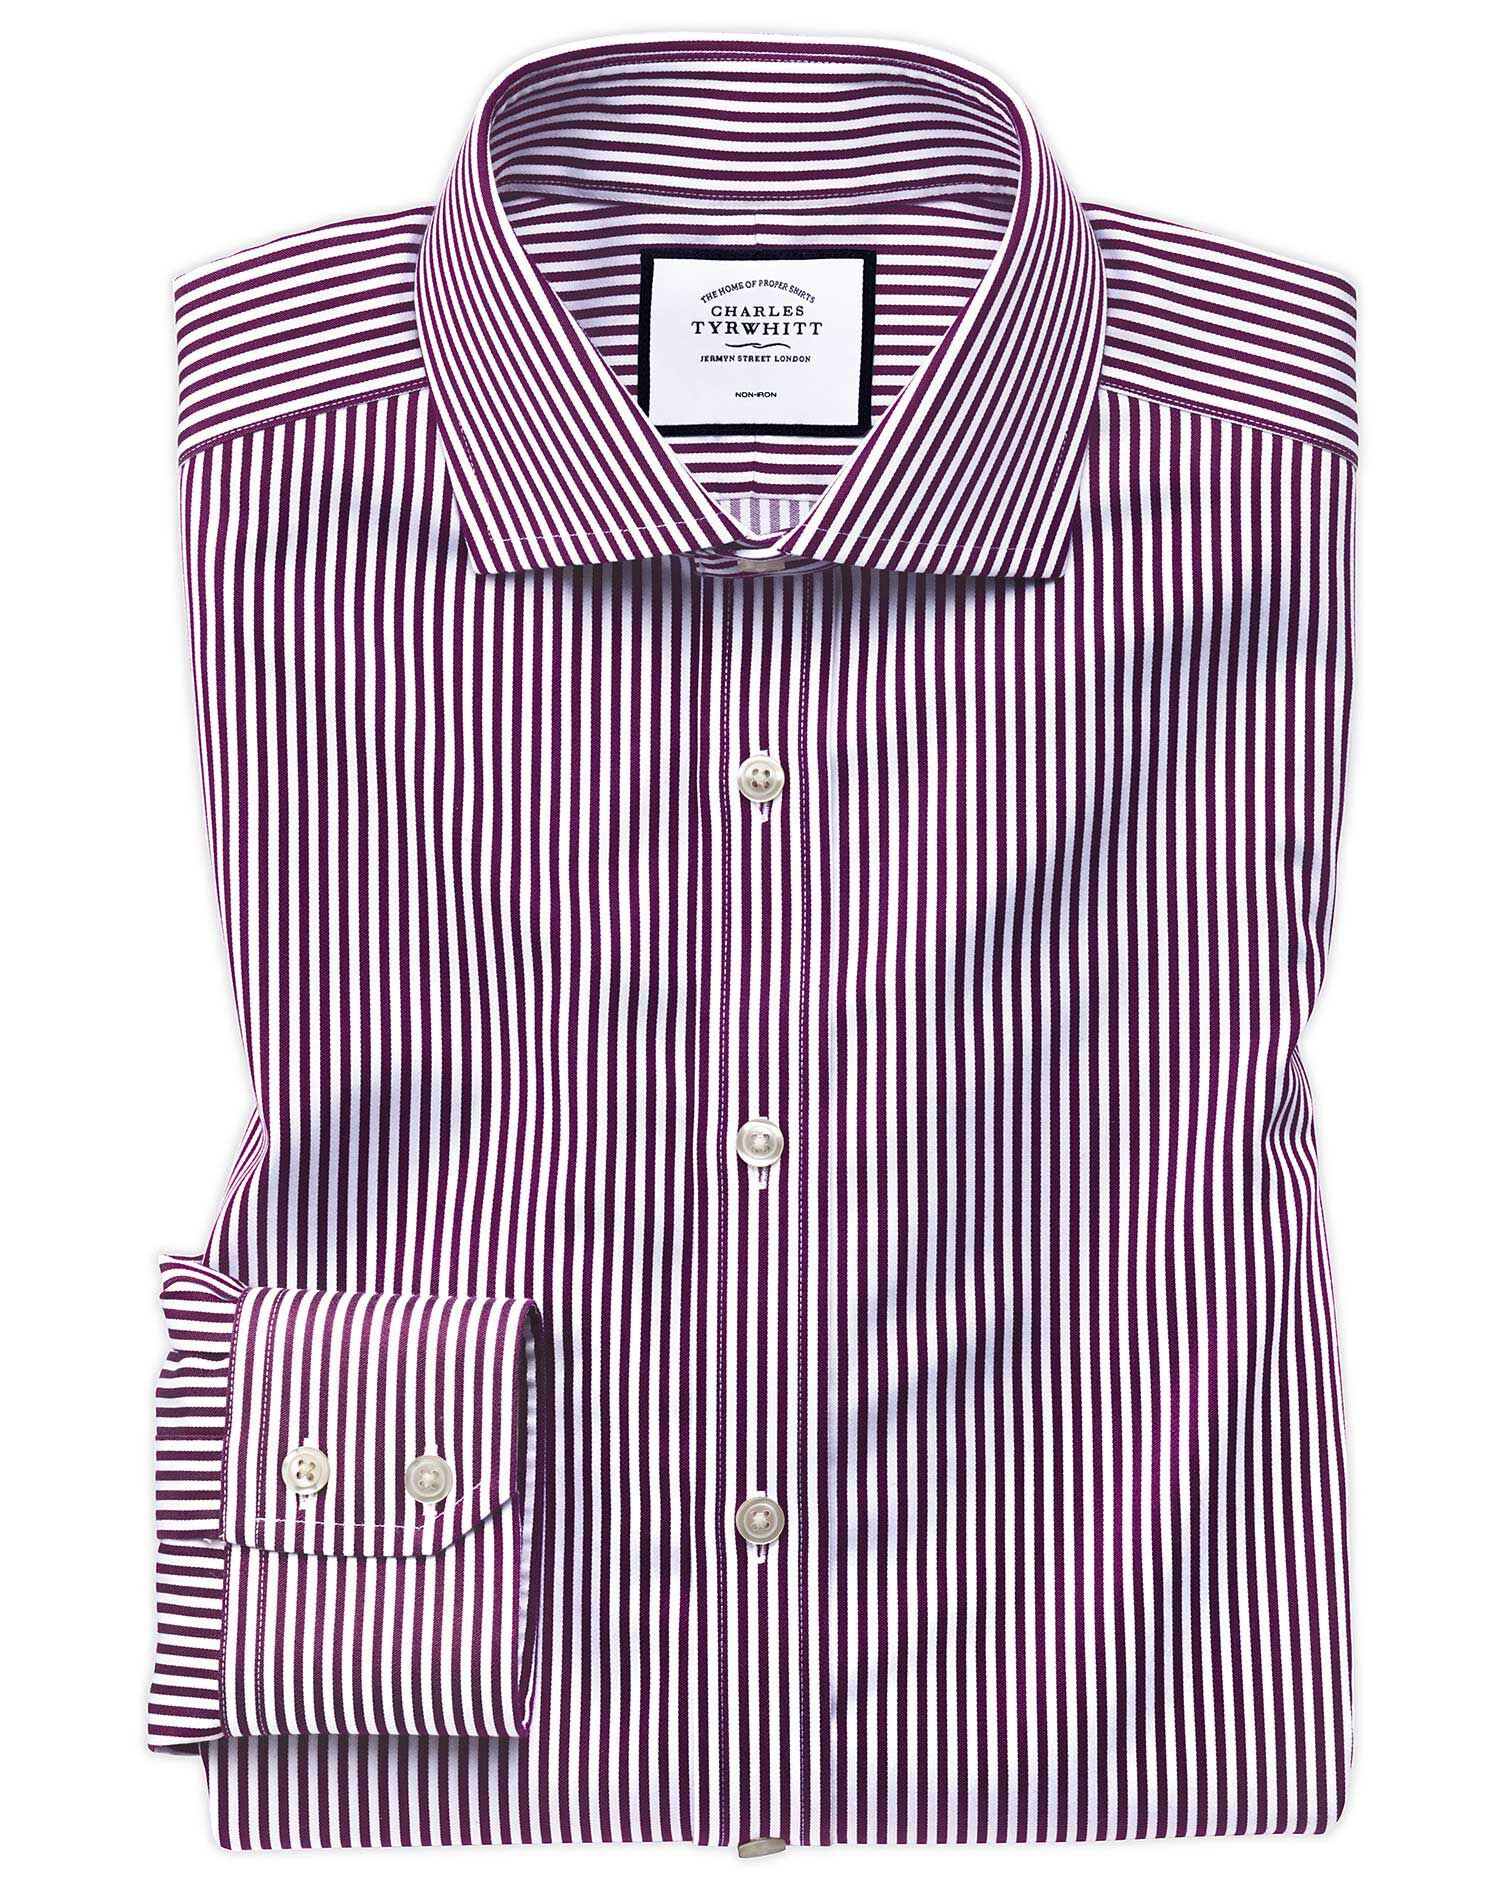 Extra Slim Fit Non-Iron Cutaway Collar Berry Twill Stripe Cotton Formal Shirt Single Cuff Size 16/36